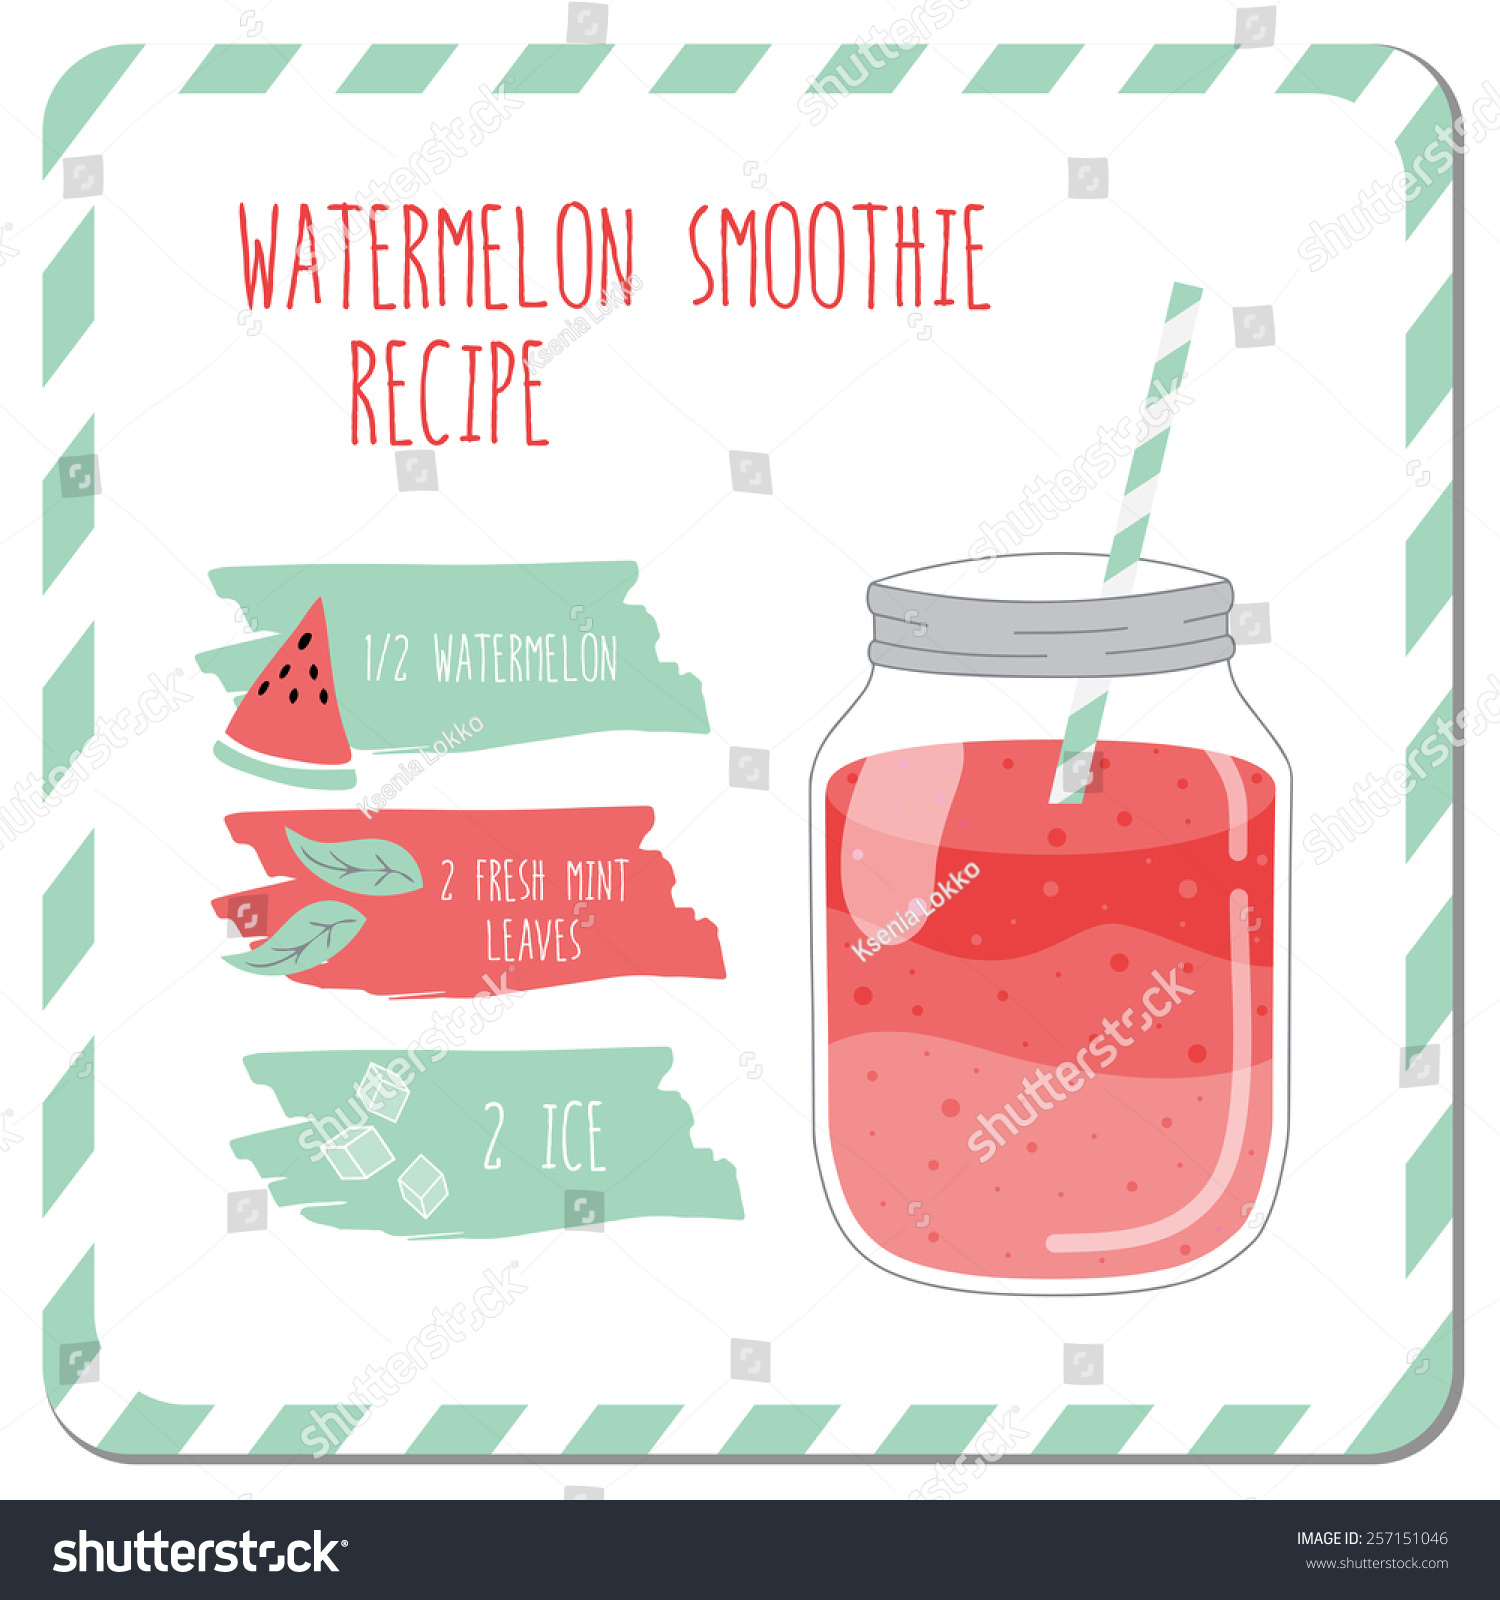 Watermelon Smoothie Recipe Used Kitchen Cafe Stock Vector 257151046 ...